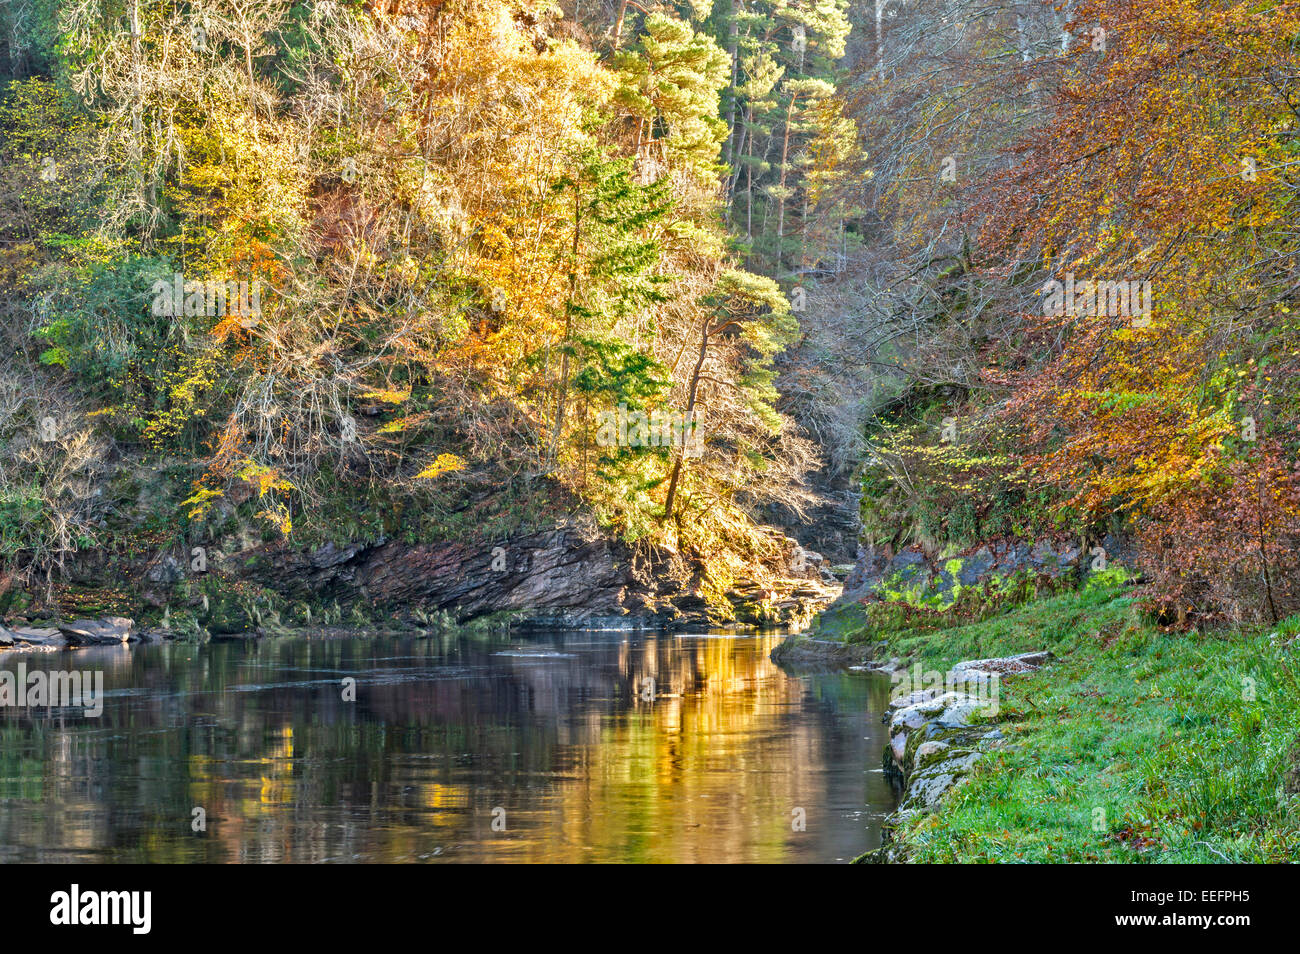 RIVER FINDHORN GORGE AT DARNAWAY WITH AUTUMNAL TREES LEAVES AND WATER REFLECTIONS - Stock Image